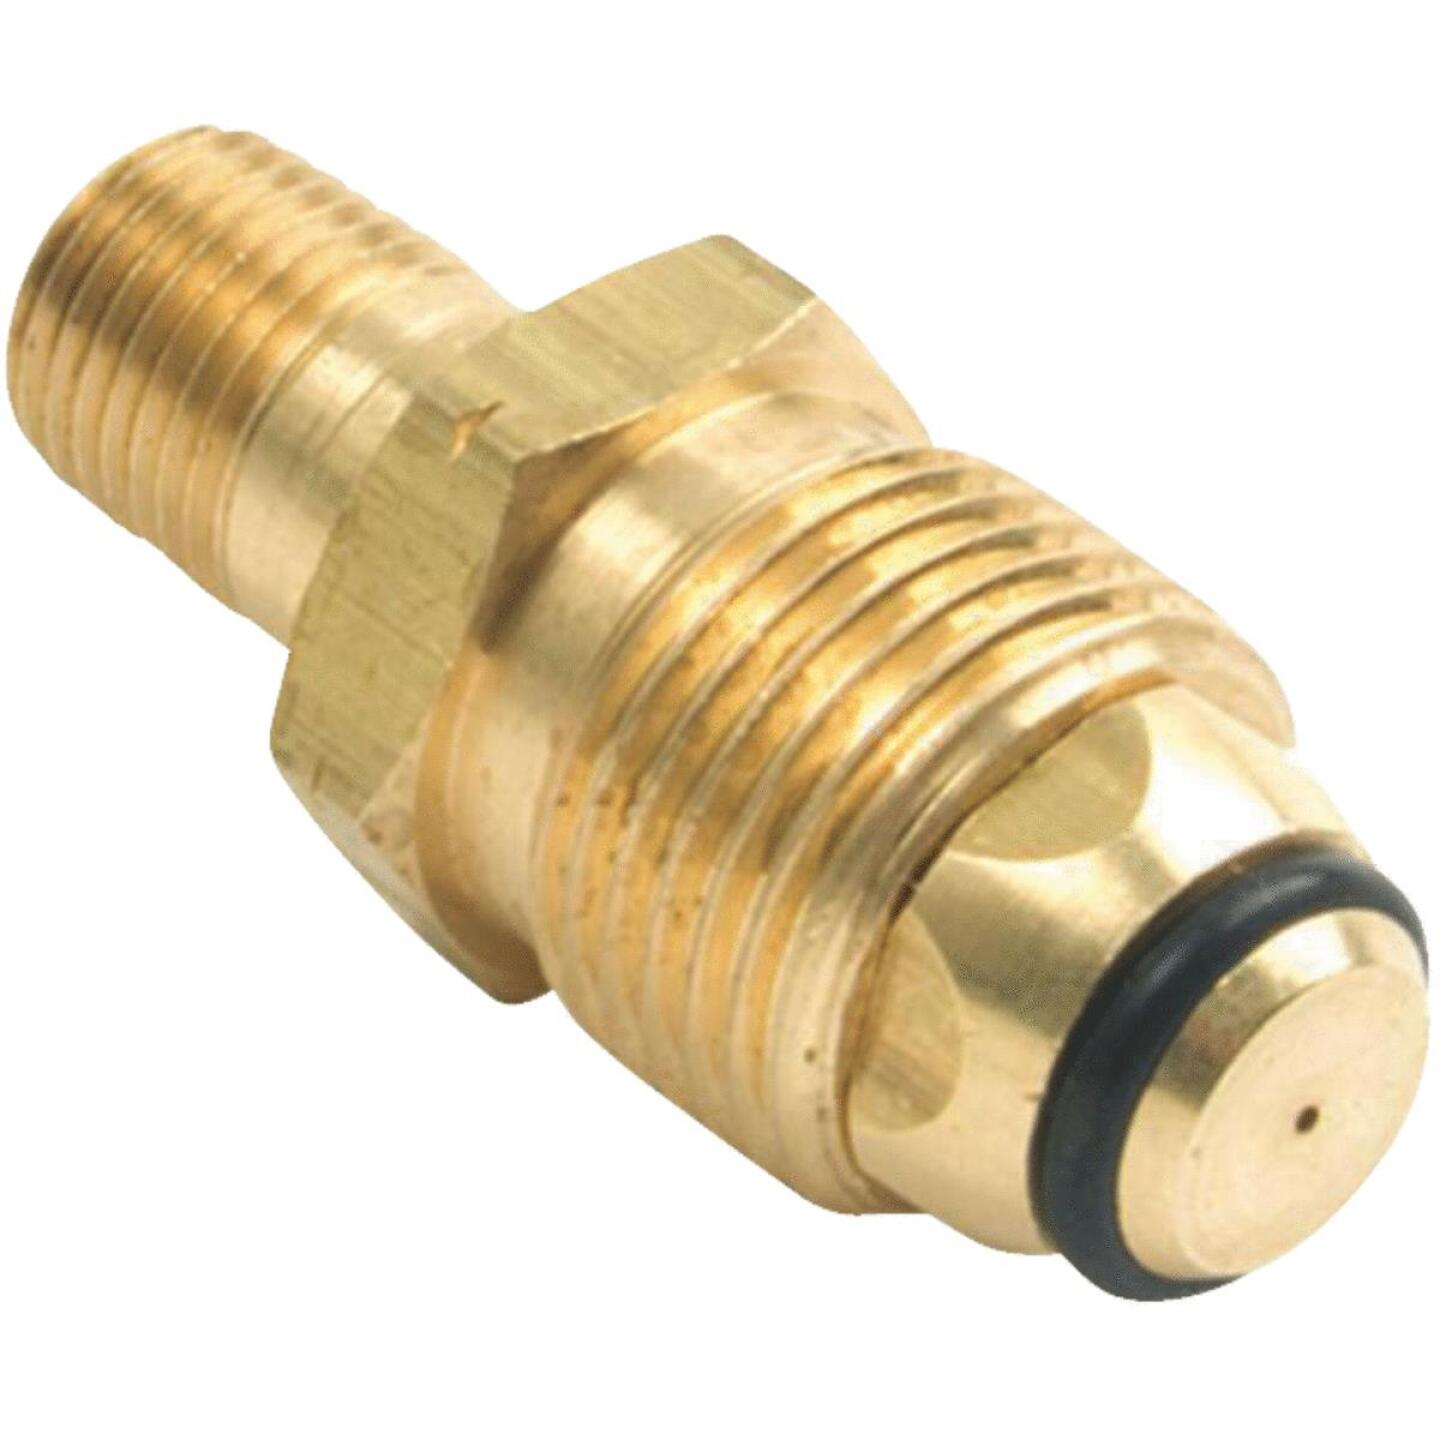 MR. HEATER 1/4 In. Female Pipe Brass LP Nut & Pigtail Image 1